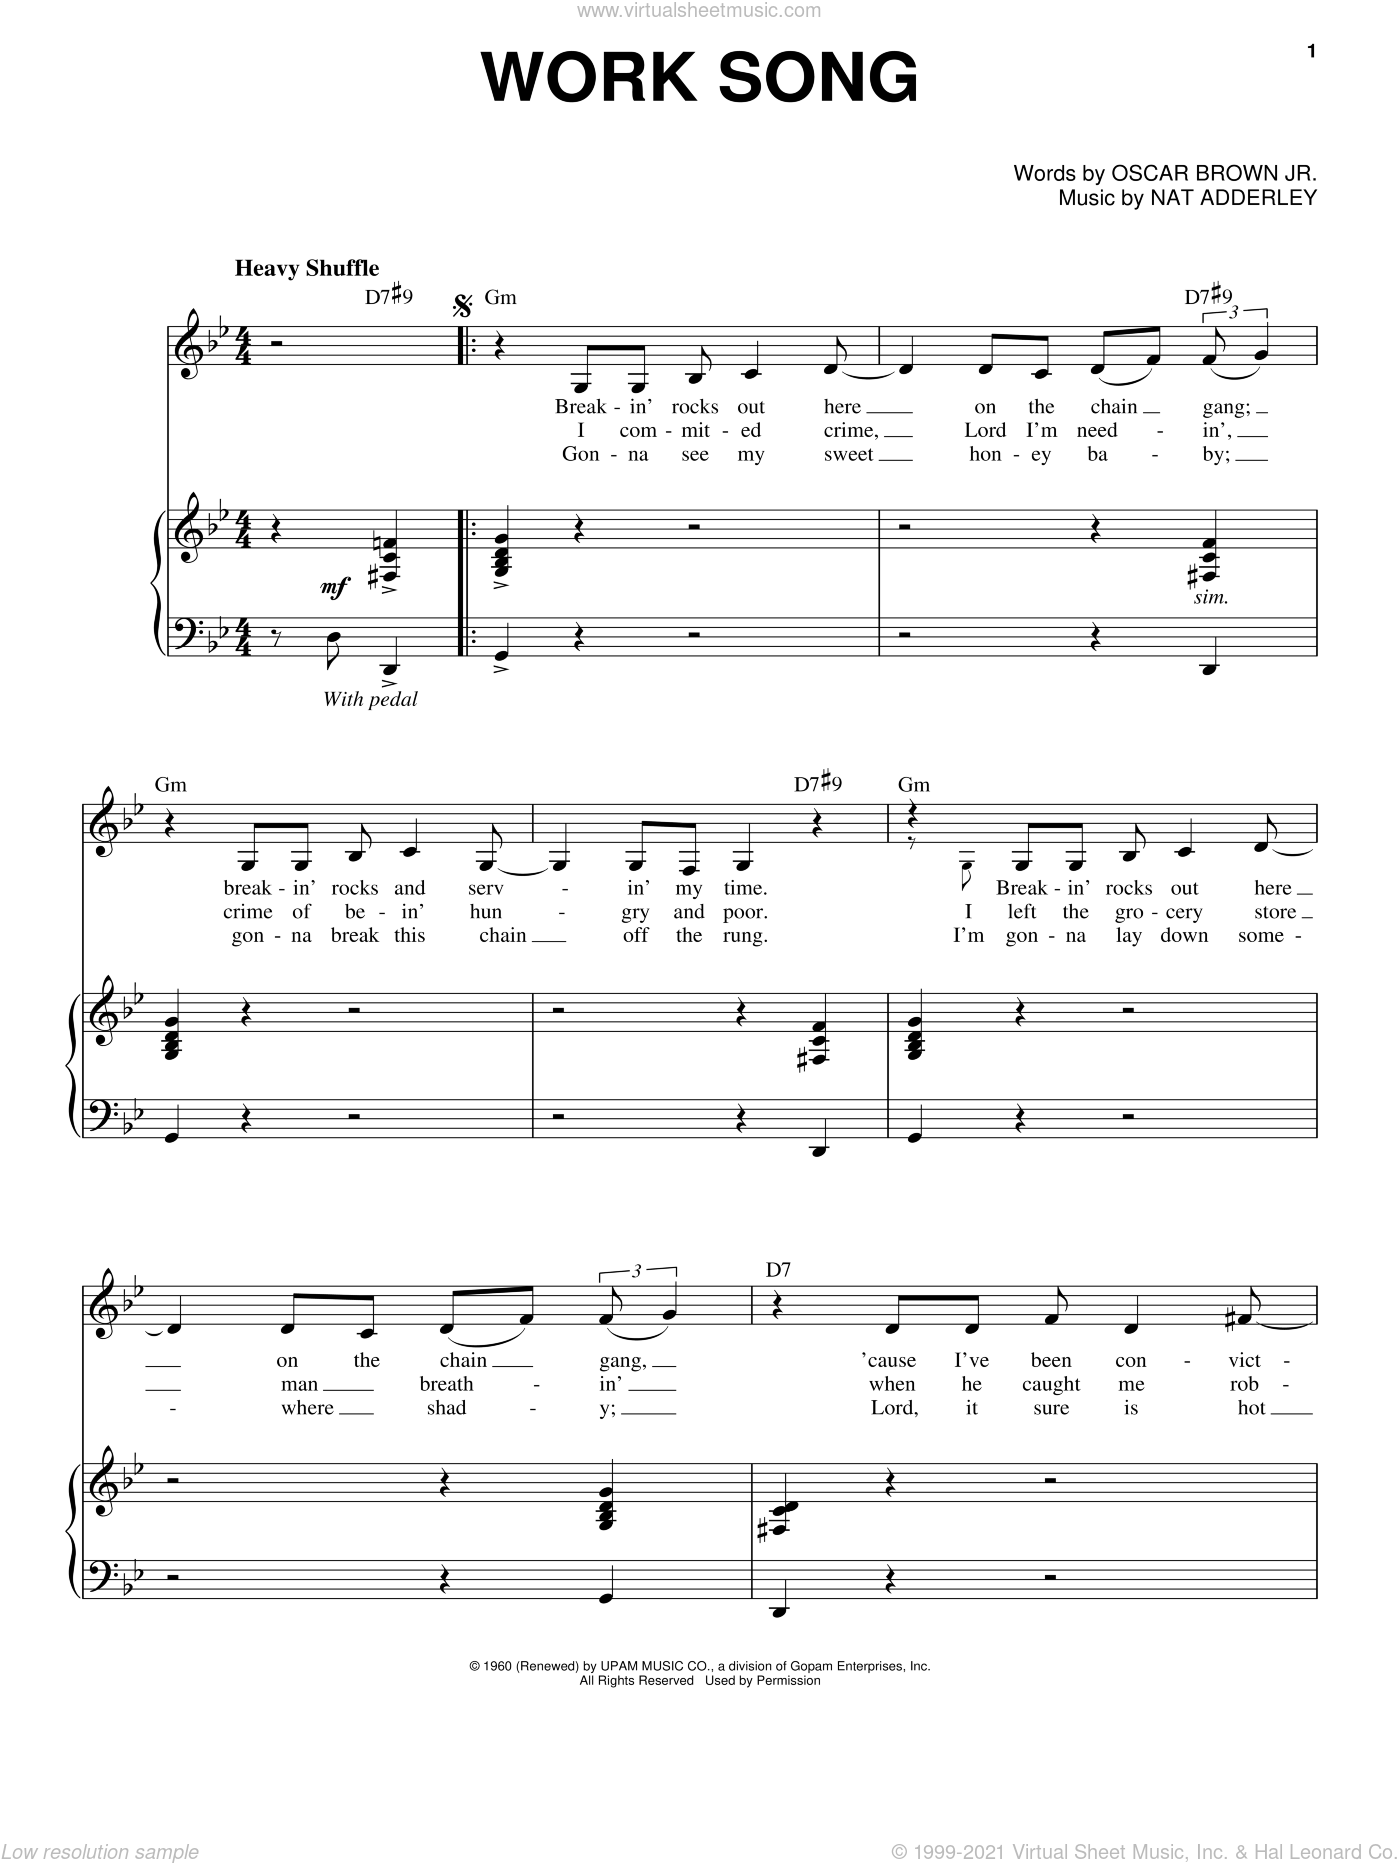 Work Song sheet music for voice and piano by Oscar Brown, Jr.